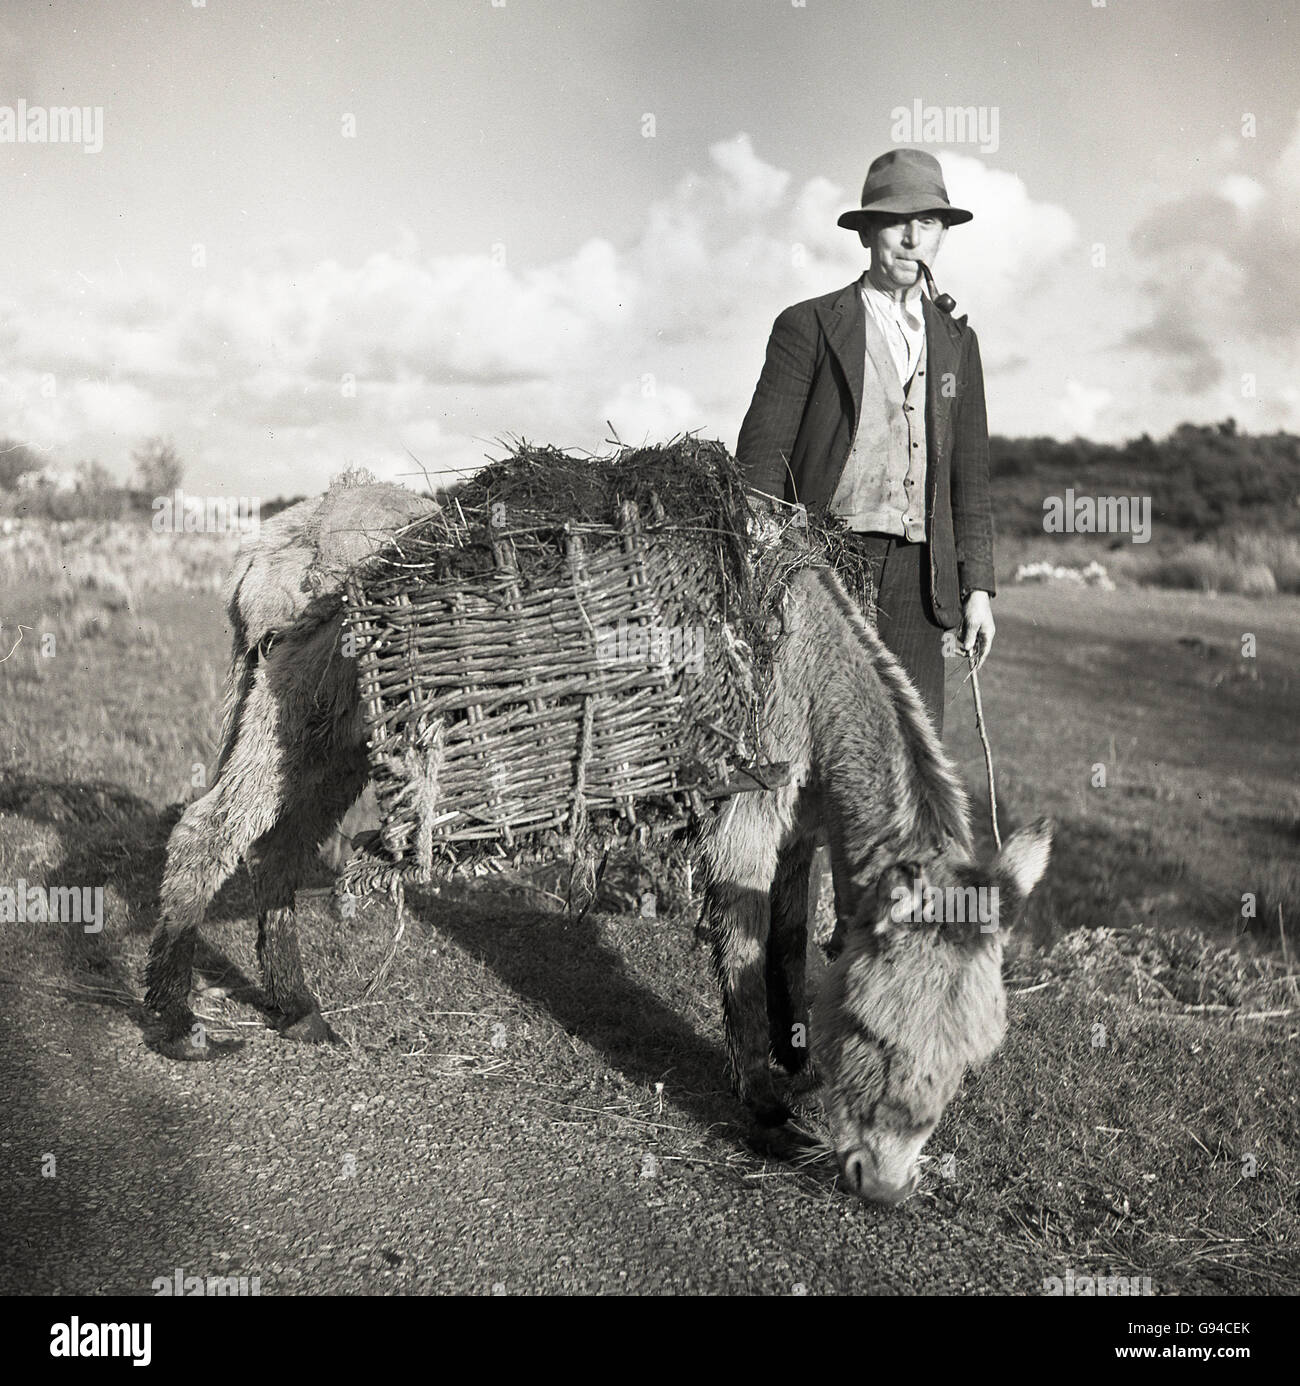 1950s, historical, a rural irishman wearing hat and smoking a pipe with his donkey. - Stock Image